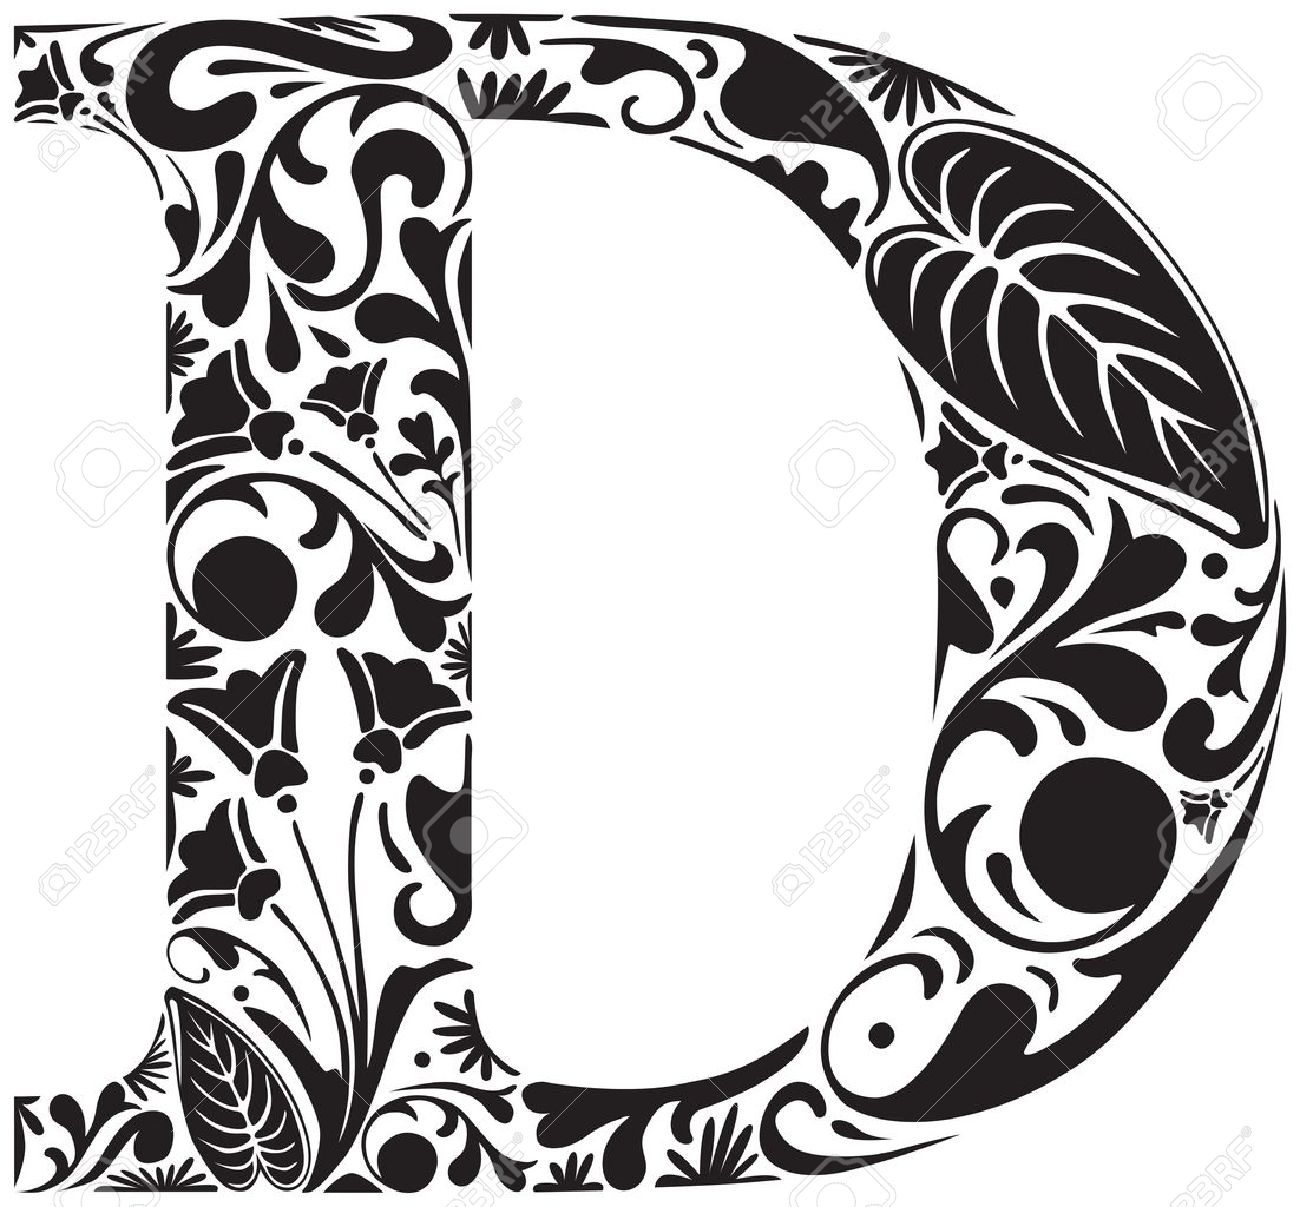 Floral Initial Capital Letter D Royalty Free Cliparts Vectors And